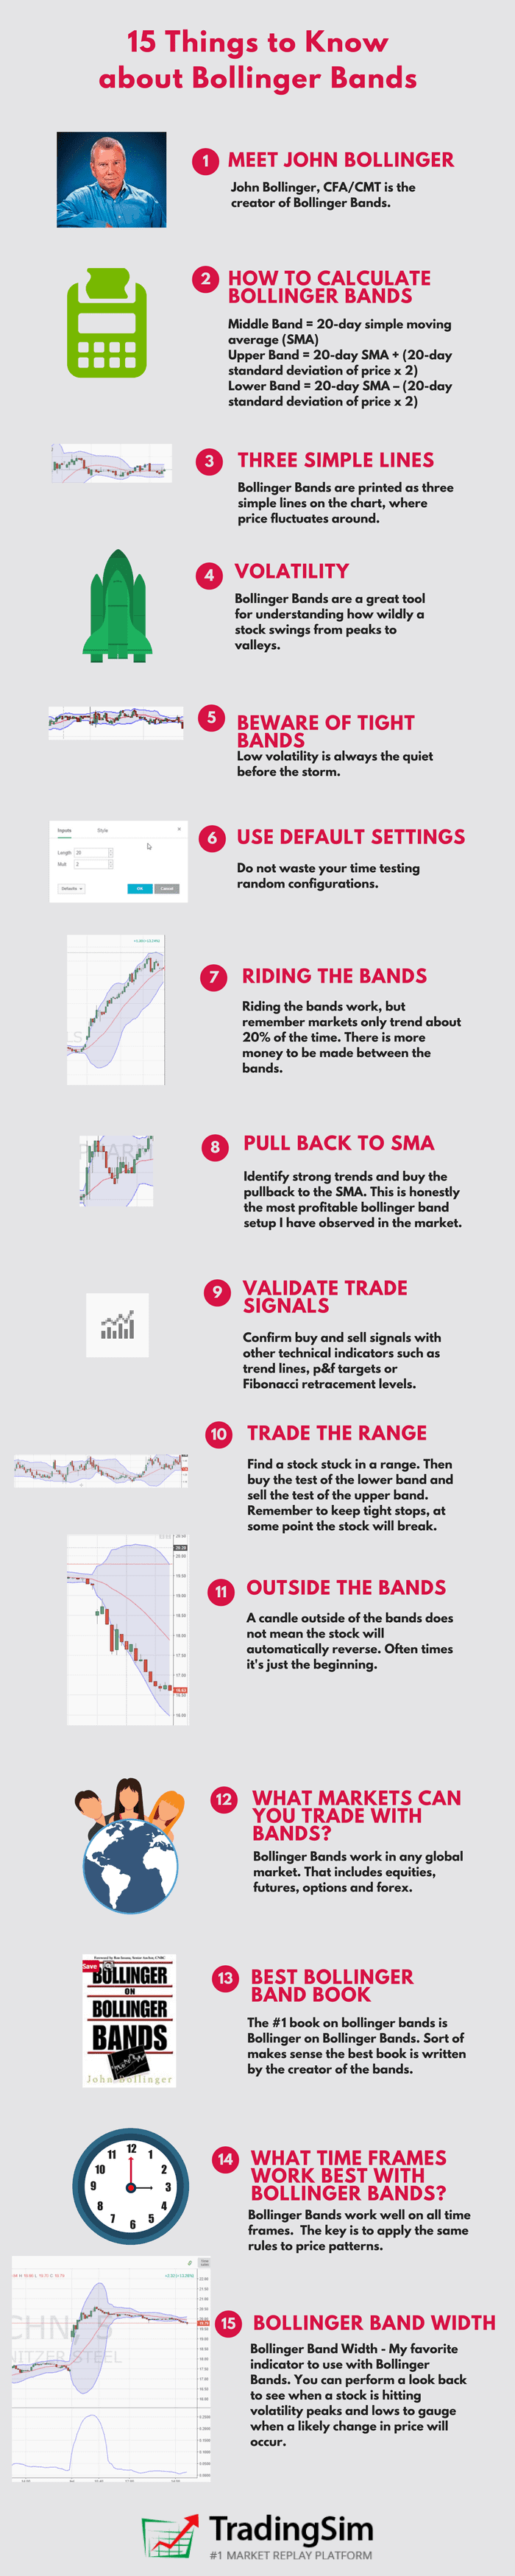 15 Things to Know about Bollinger Bands